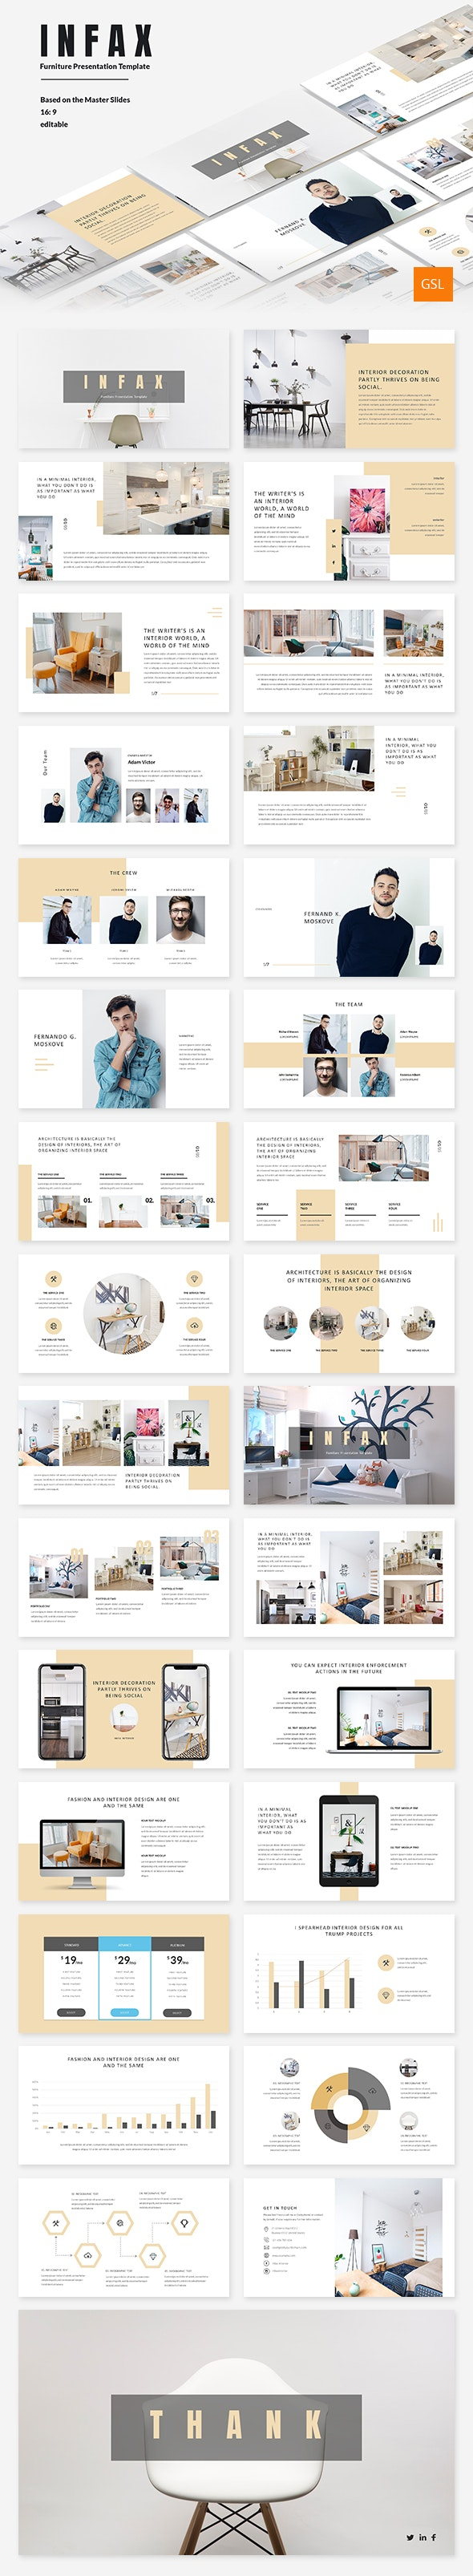 Infax - Furniture Google Slides Template - Google Slides Presentation Templates